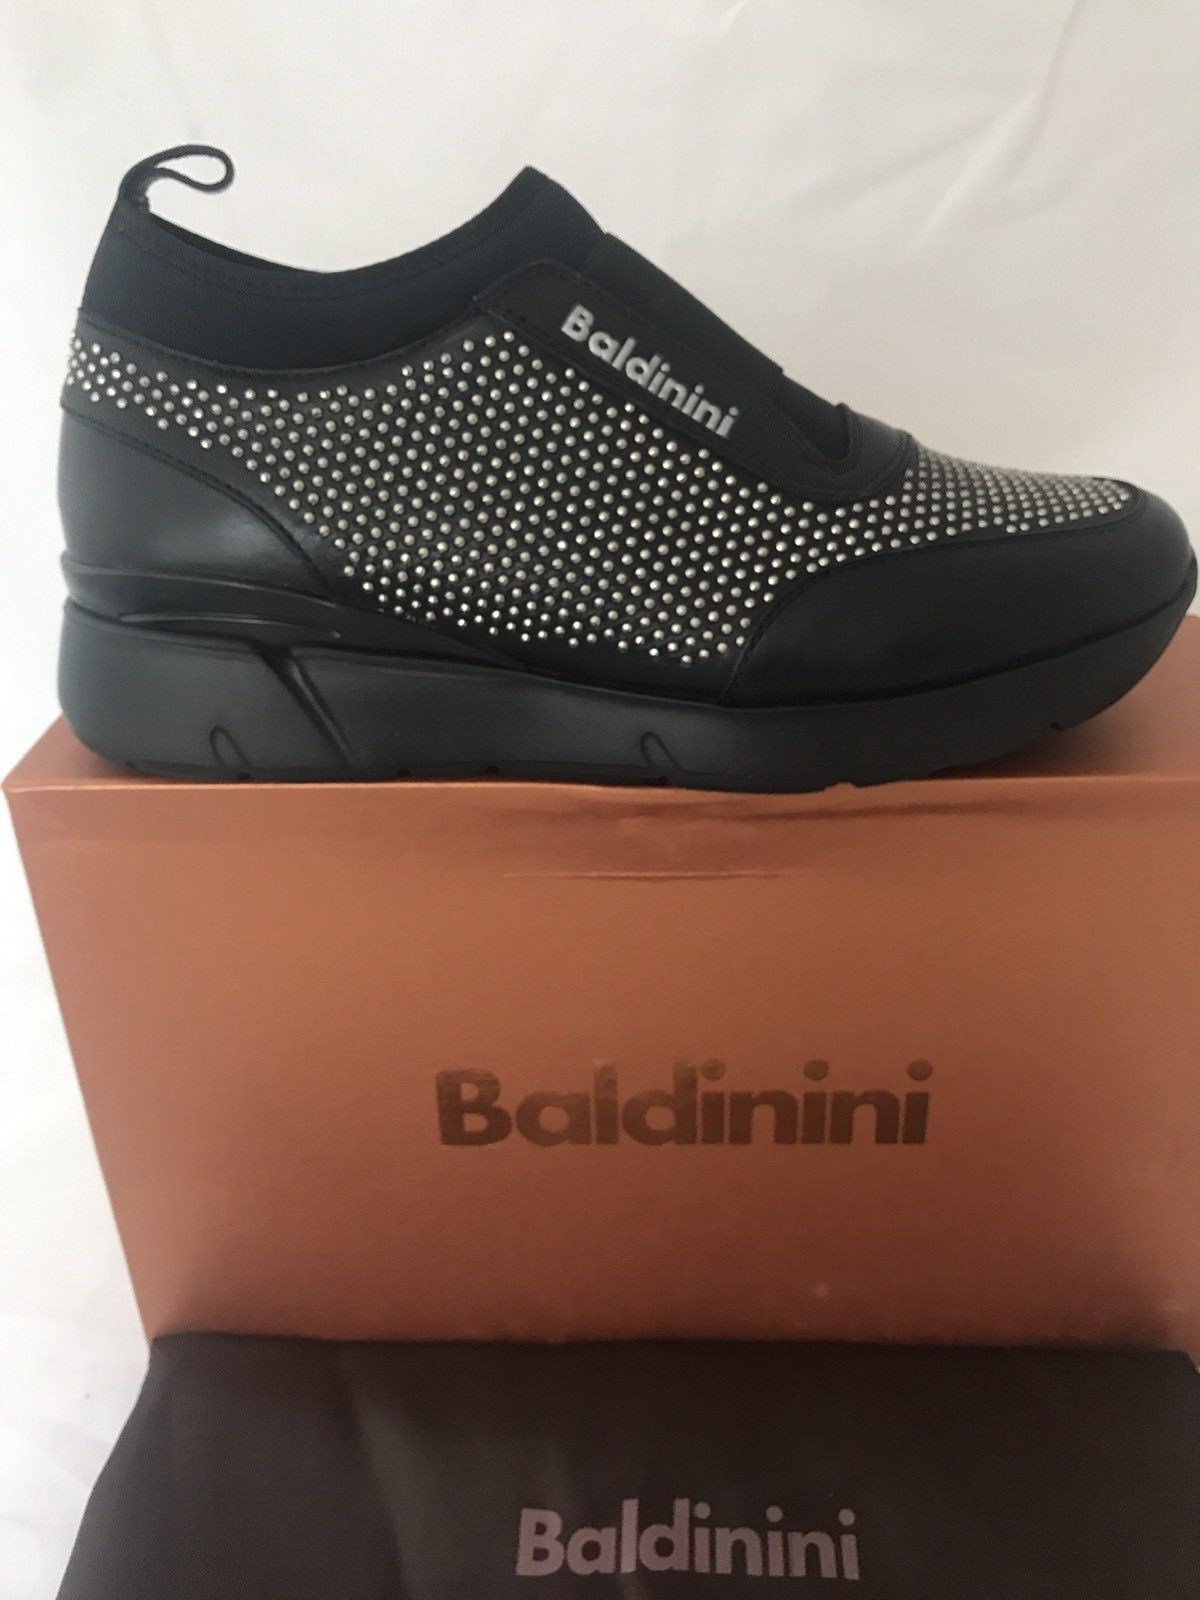 NIB $580 Baldinini Women's  Studded Sneakers  748465 Black 37.5 Eu Made in Italy - BAYSUPERSTORE